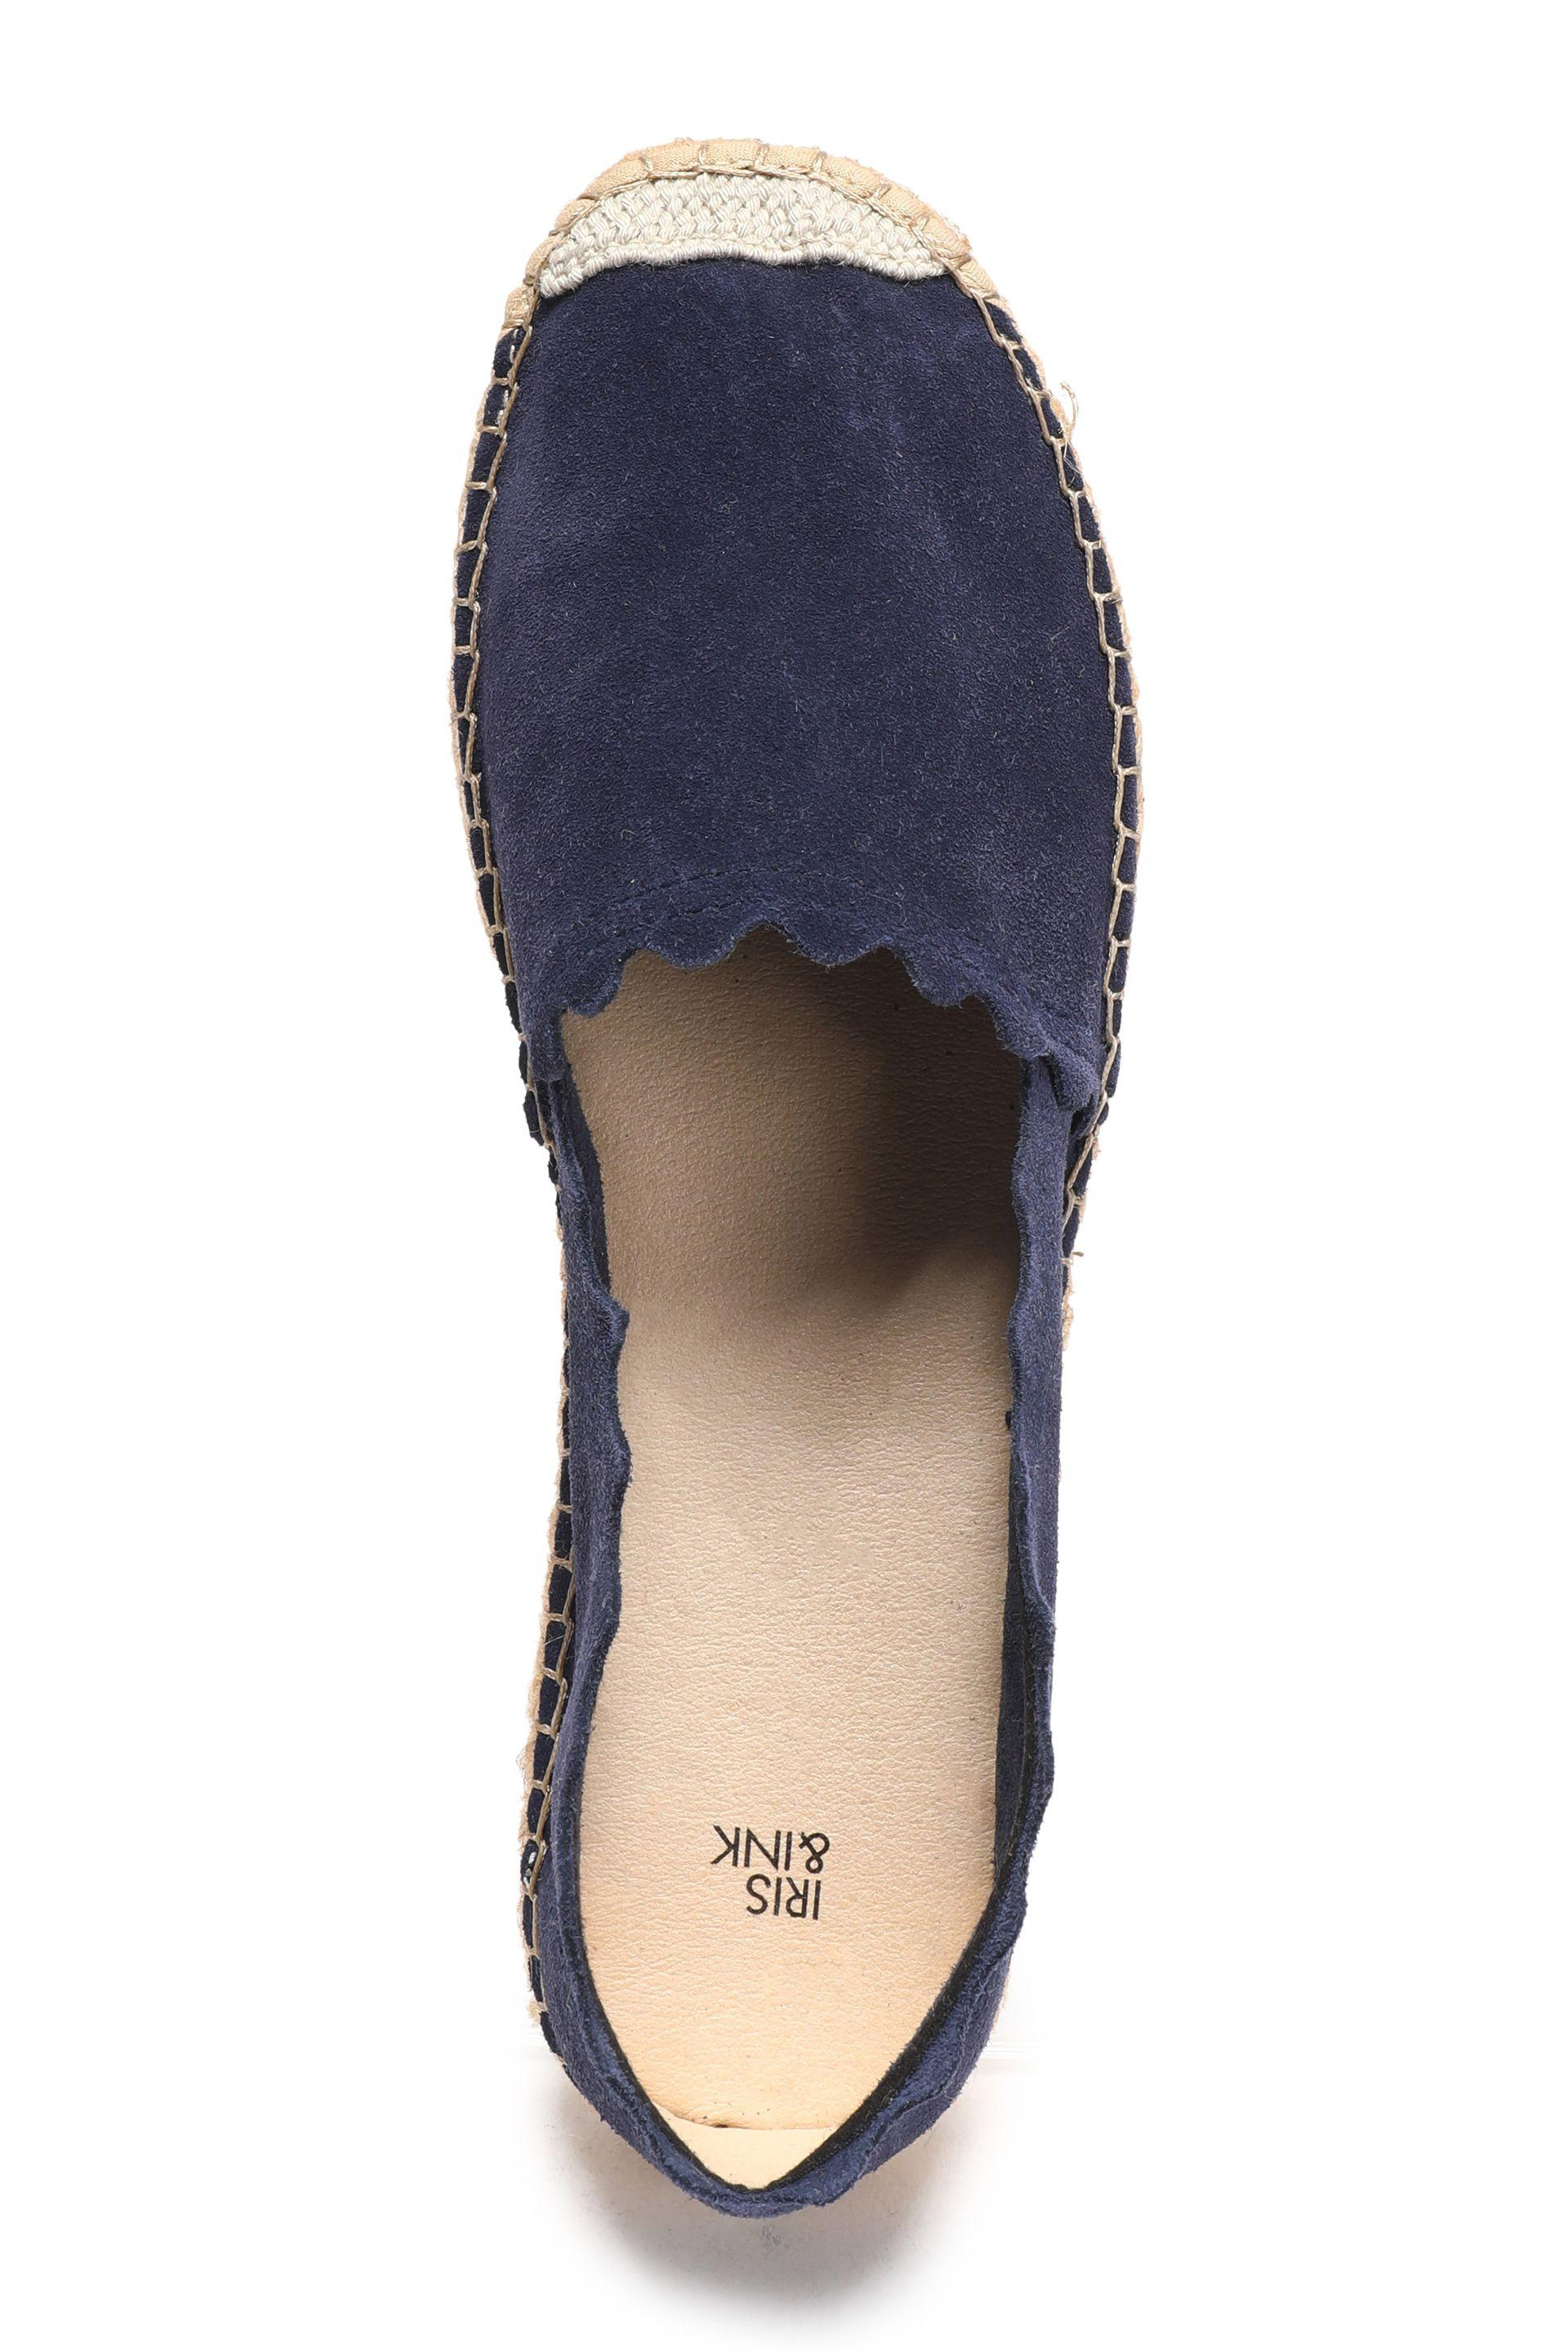 9a930abc842 Women's Blue Hester Leather Espadrilles Navy